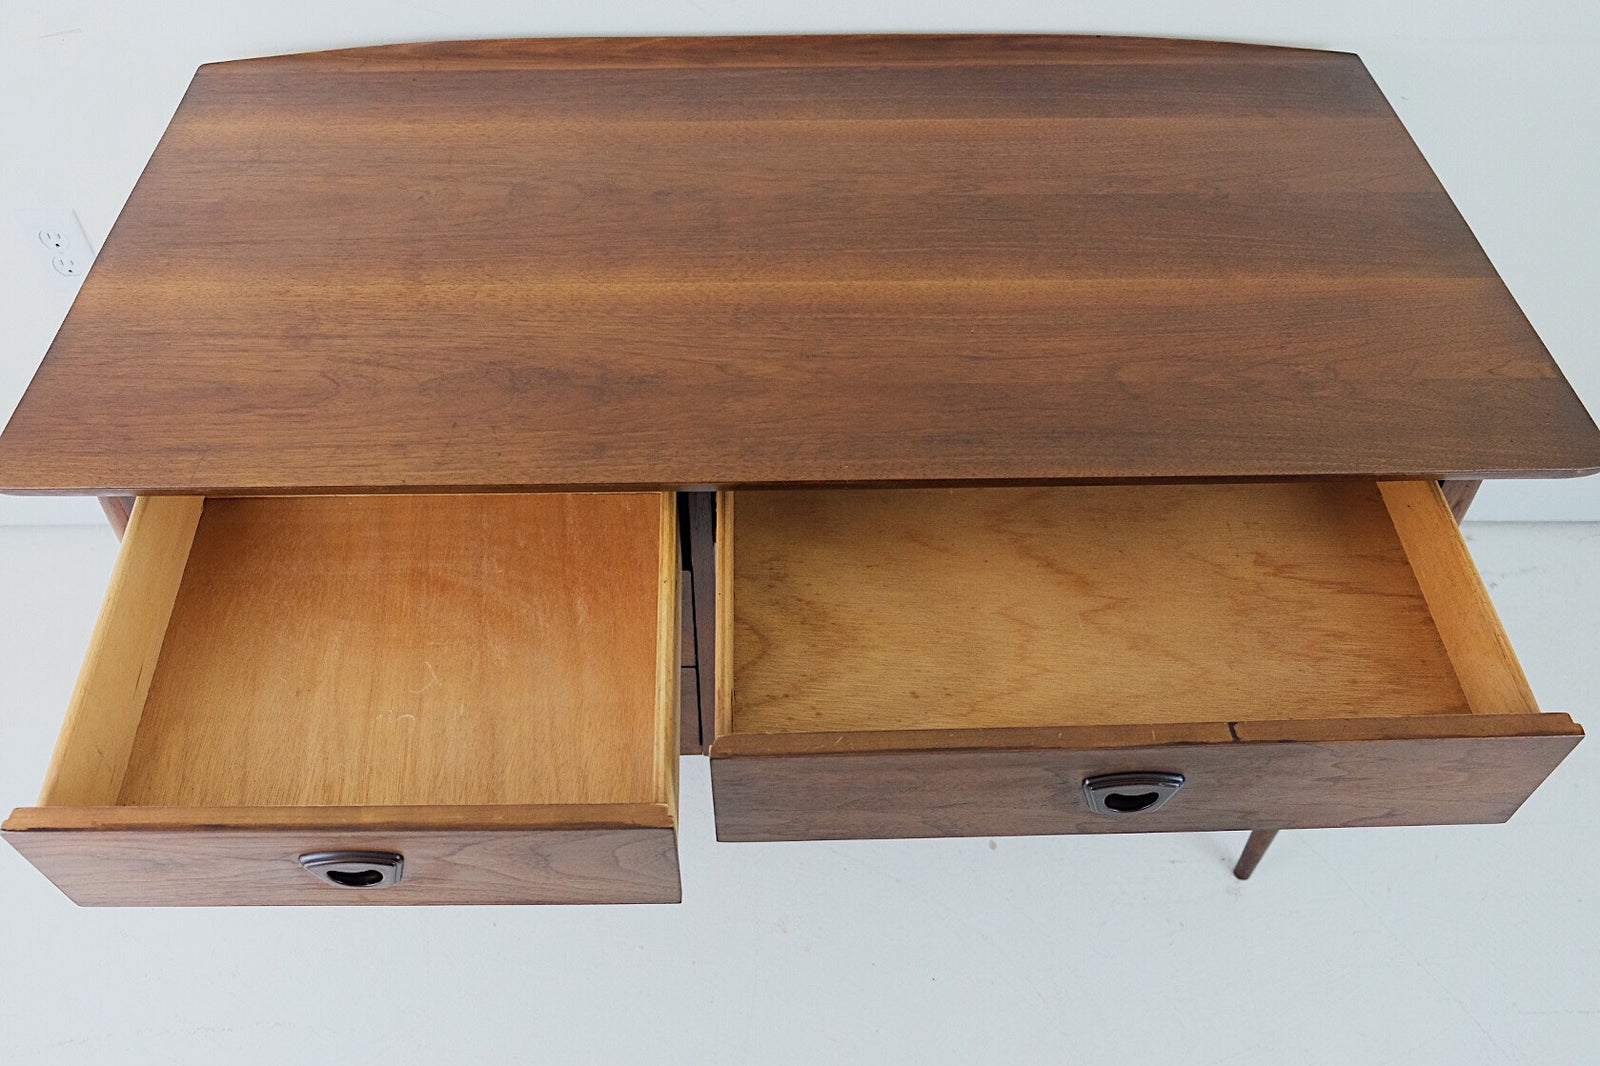 Beautiful Basset Desk Three Drawers with Carved Handles Curved Top